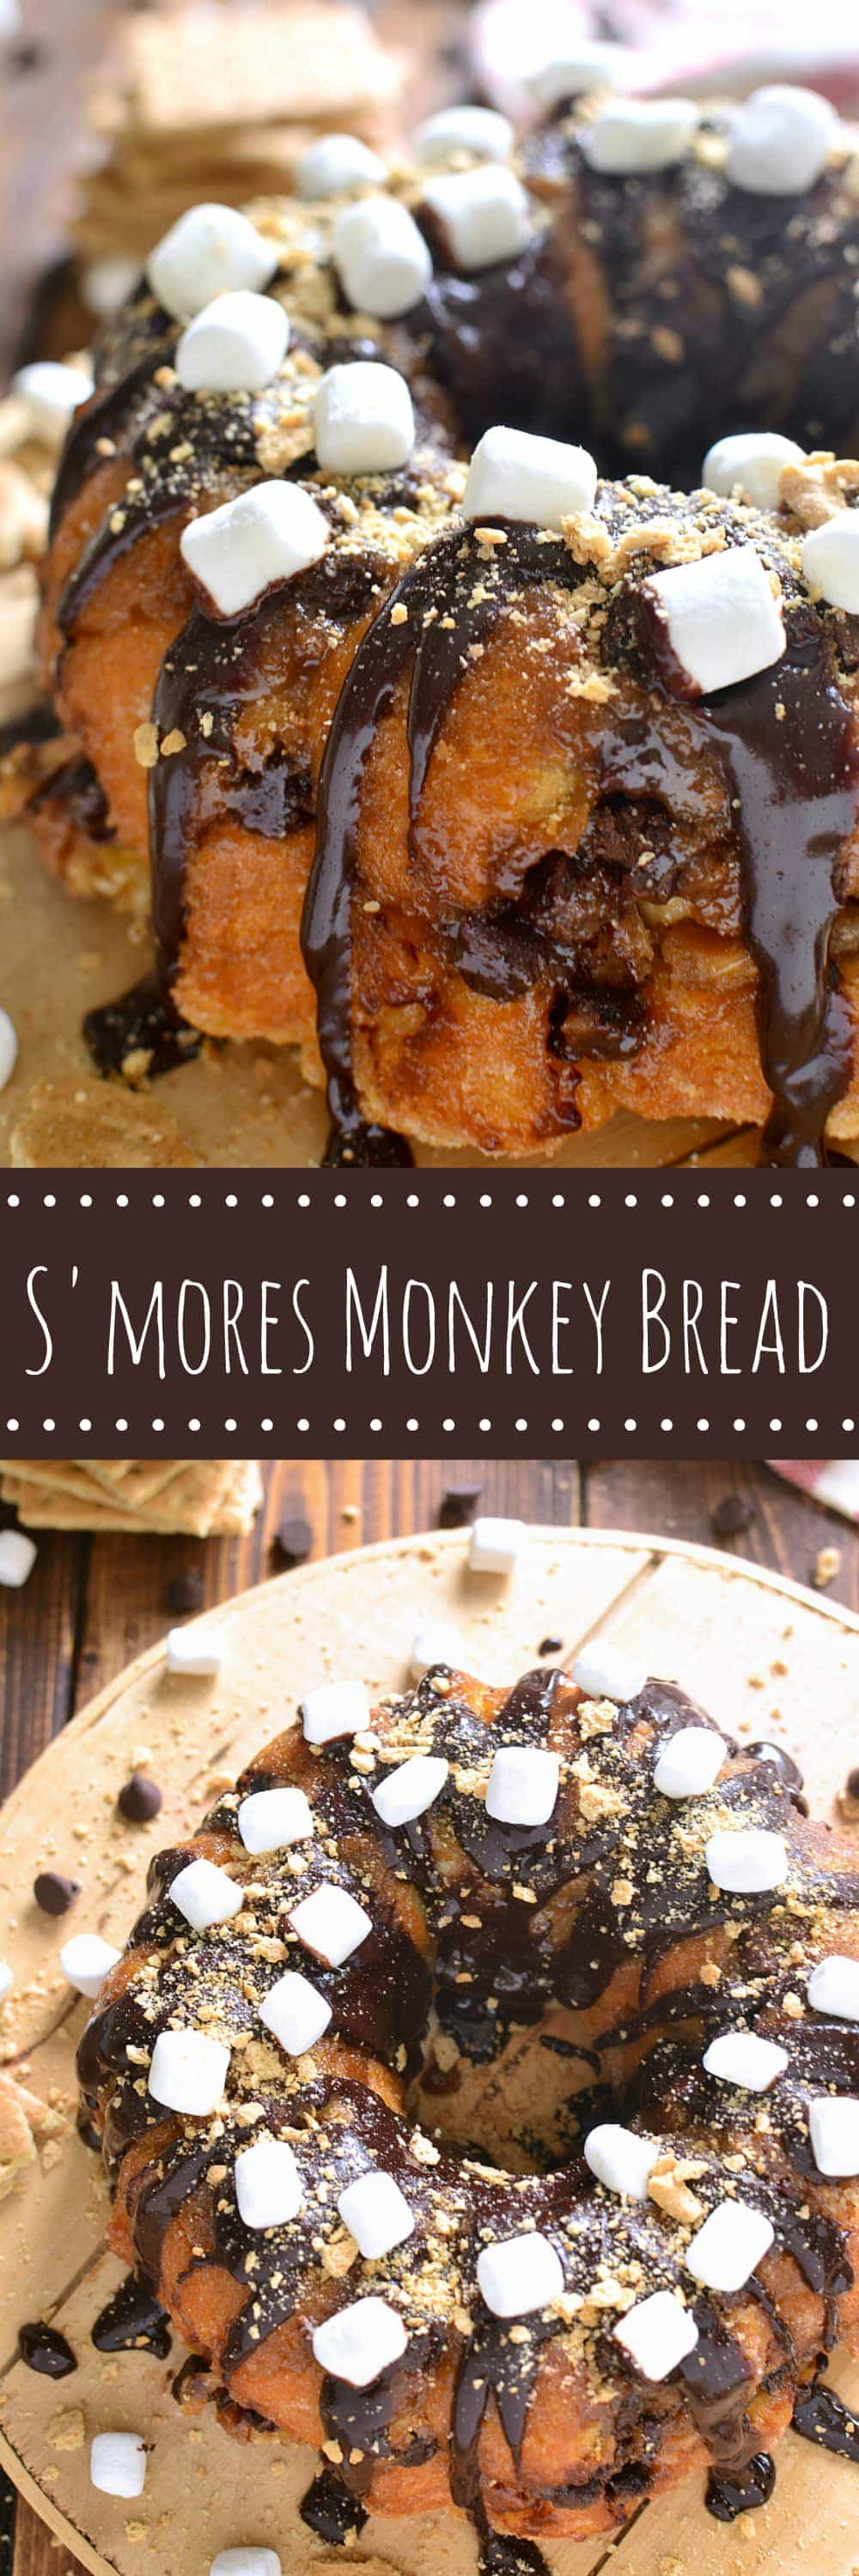 S'mores Monkey Bread is loaded with chocolate, marshmallows, and graham cracker crumbs....and seriously addictive! Grab a piece quickly because this is one treat that won't last long!